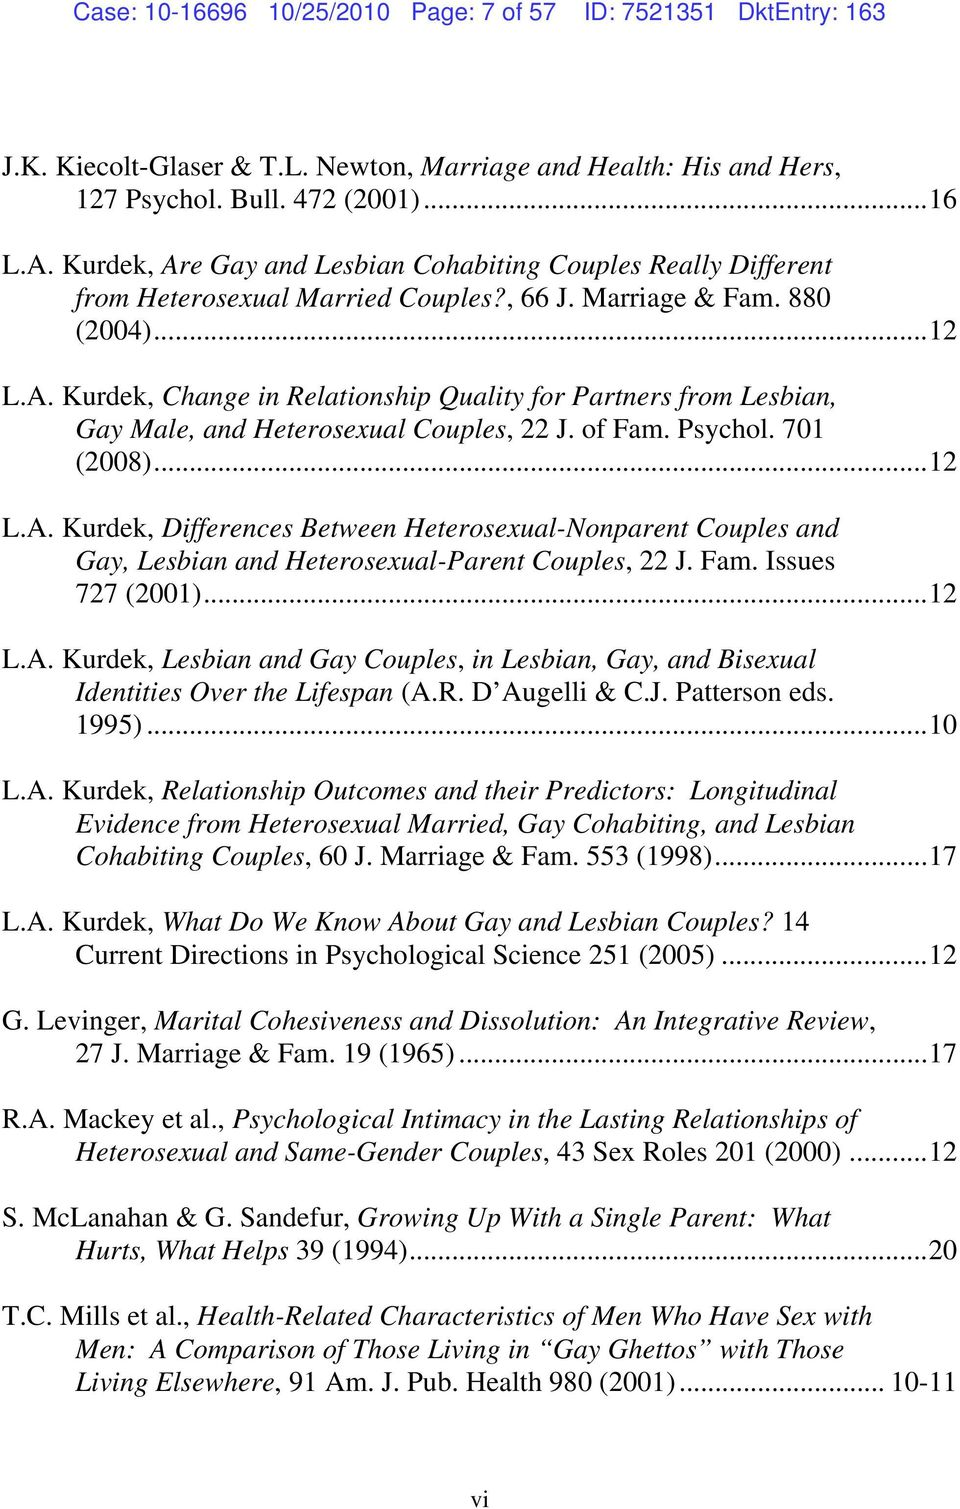 of Fam. Psychol. 701 (2008)...12 L.A. Kurdek, Differences Between Heterosexual-Nonparent Couples and Gay, Lesbian and Heterosexual-Parent Couples, 22 J. Fam. Issues 727 (2001)...12 L.A. Kurdek, Lesbian and Gay Couples, in Lesbian, Gay, and Bisexual Identities Over the Lifespan (A.